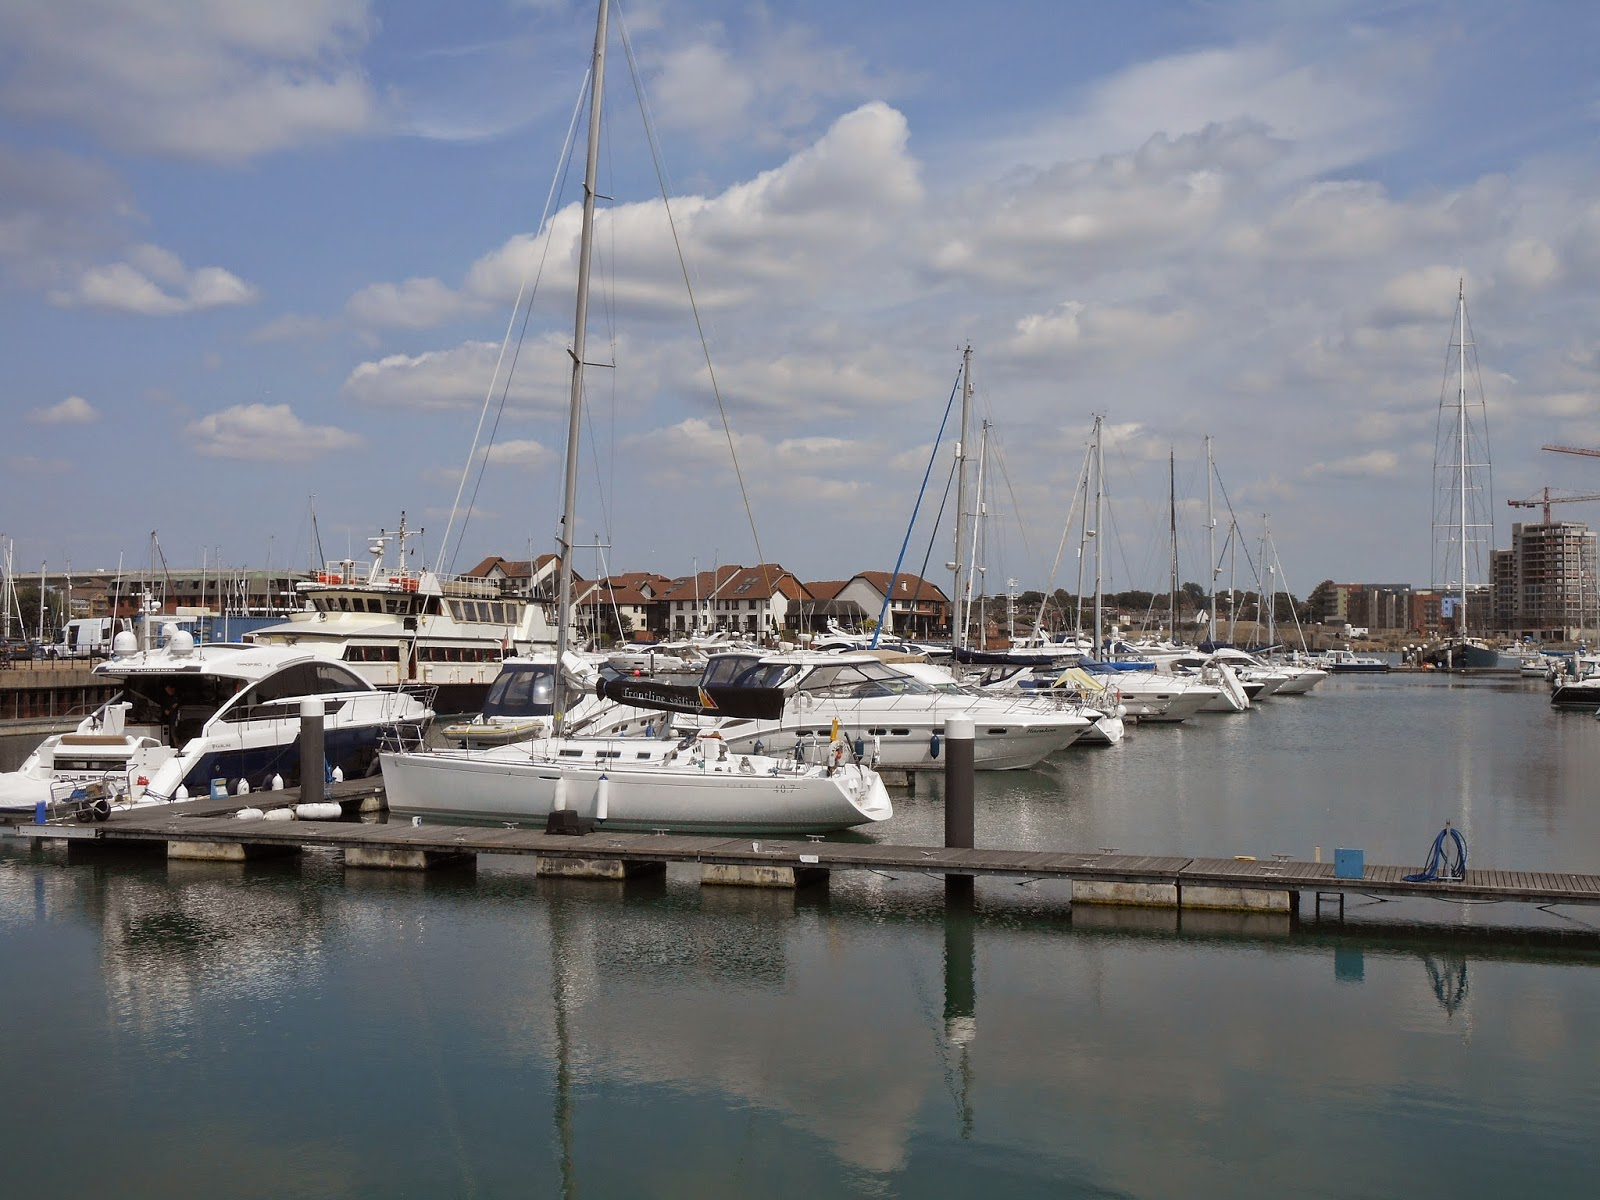 Nature Notes and Observations: Ocean Village, Southampton Re-visited